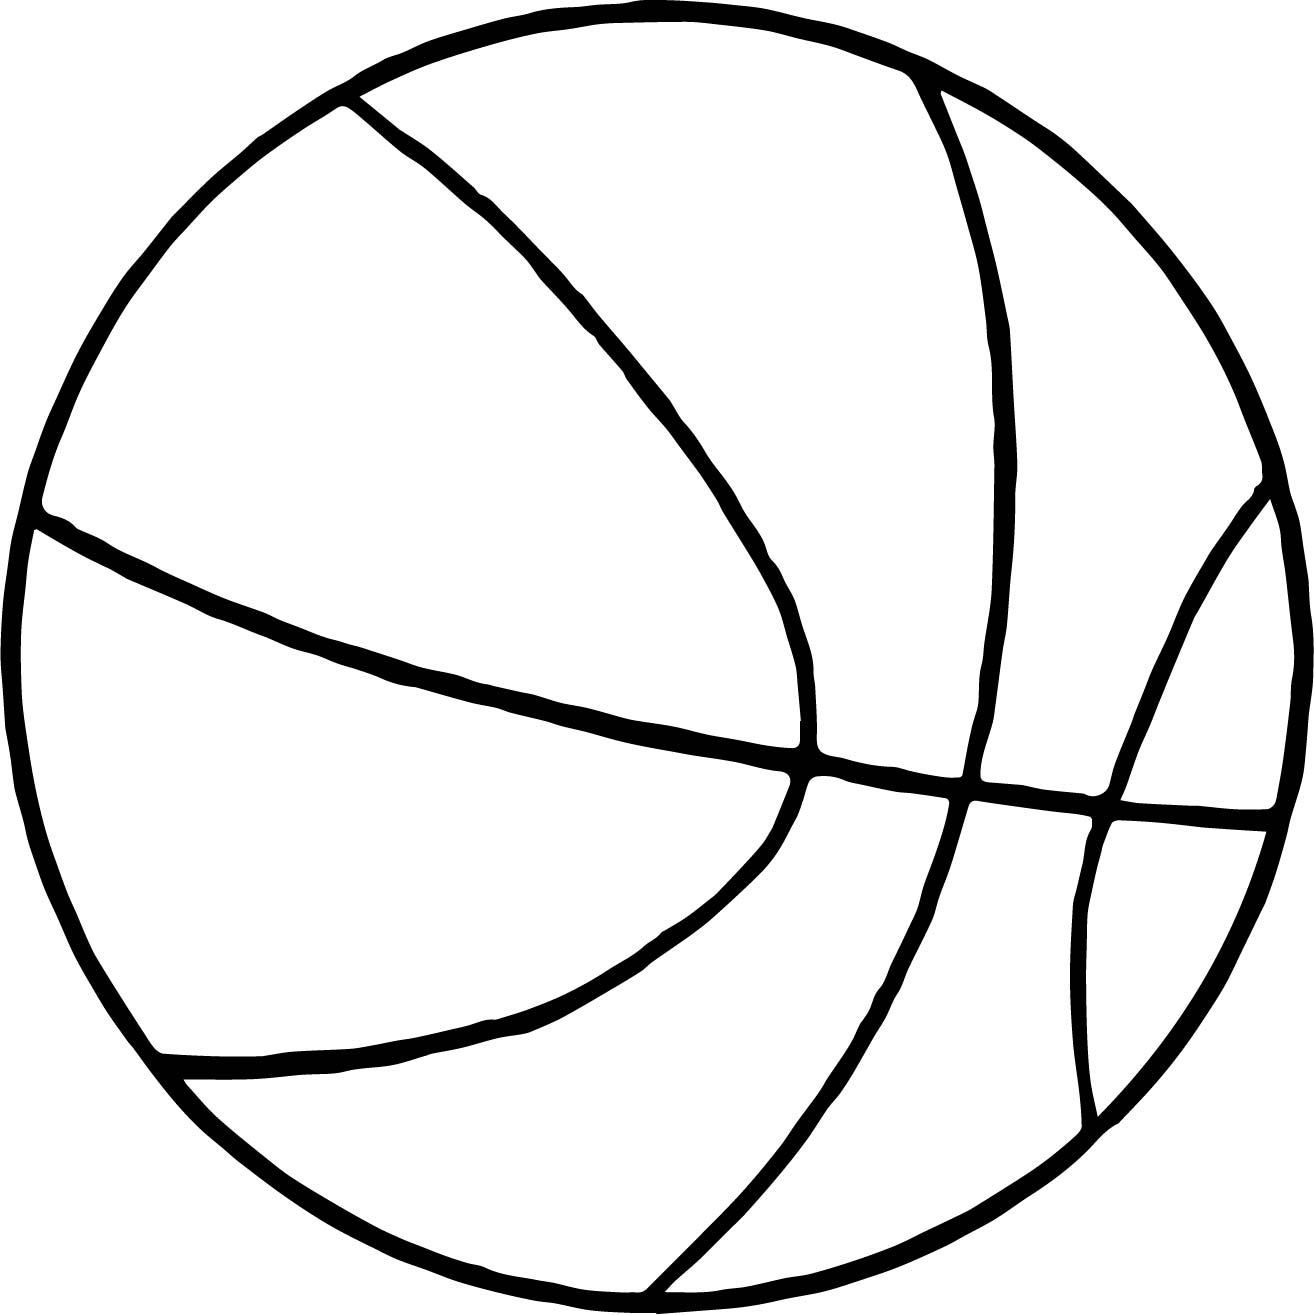 ball coloring pages - photo#38